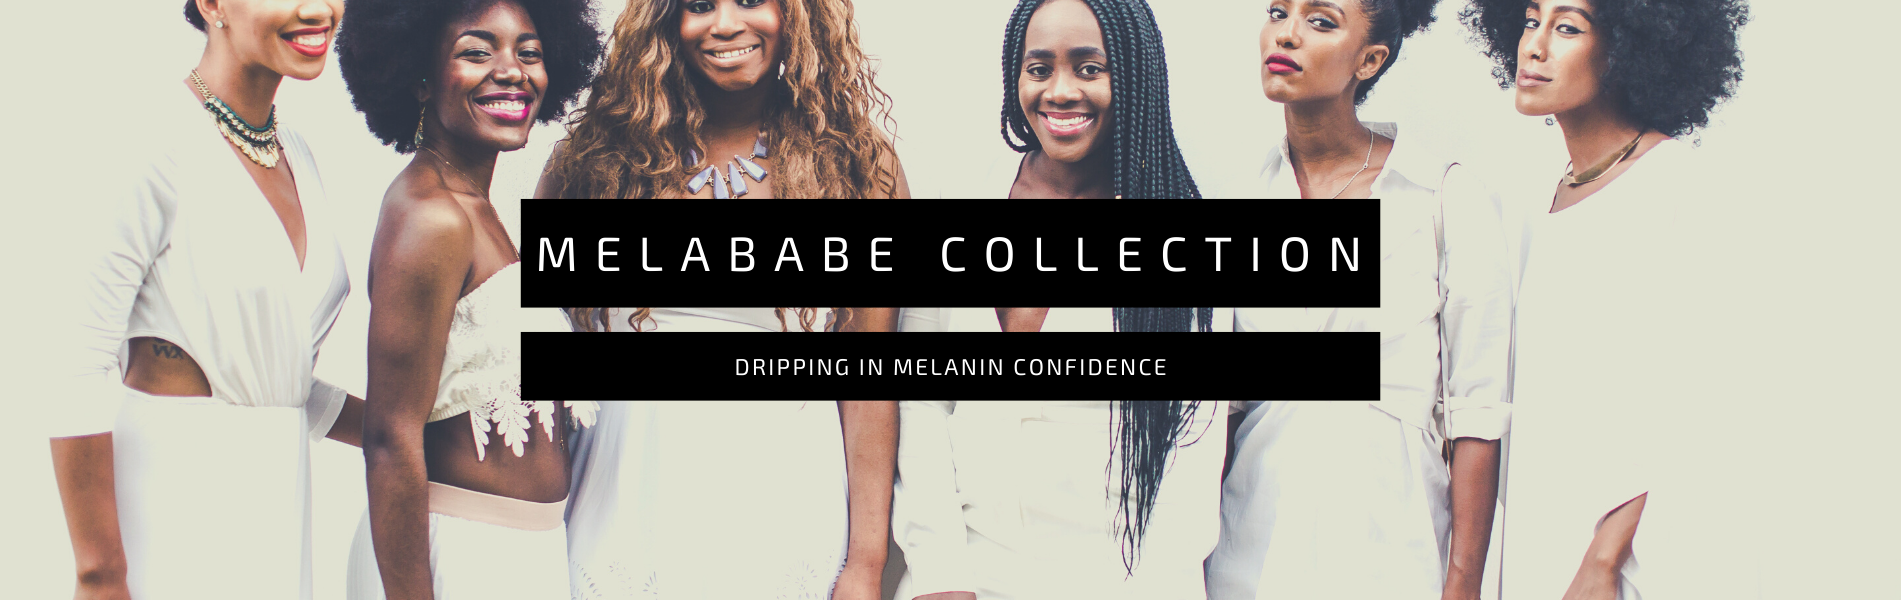 melabe collection 1